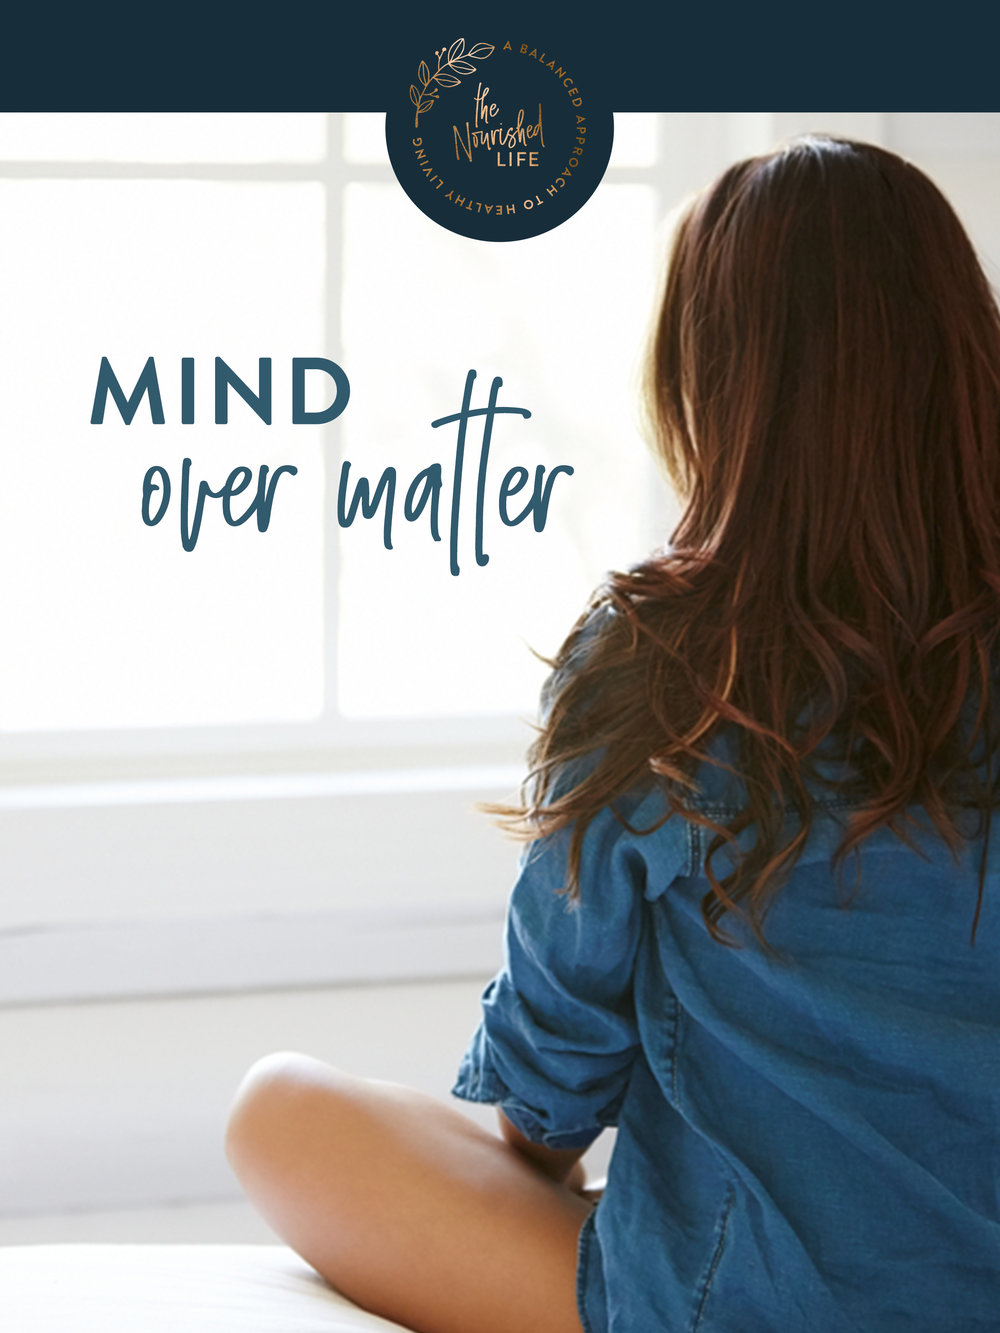 Mind Over Matter | The Nourished Life e-book design by Janessa Rae Design Creative